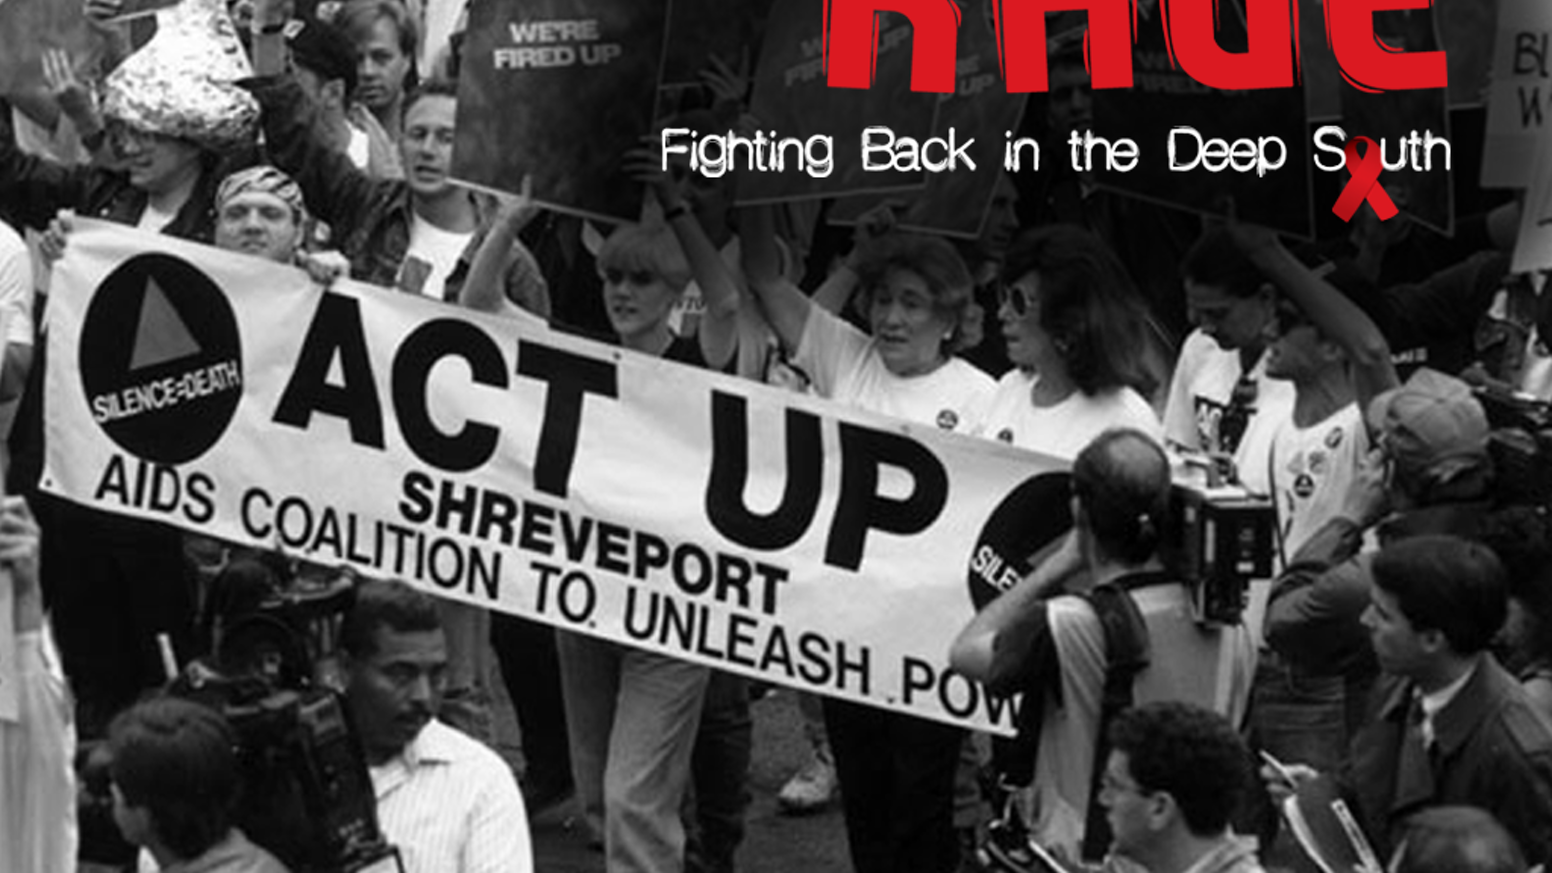 An independent documentary examining the work and influence of ACT UP Shreveport in the conservative Deep